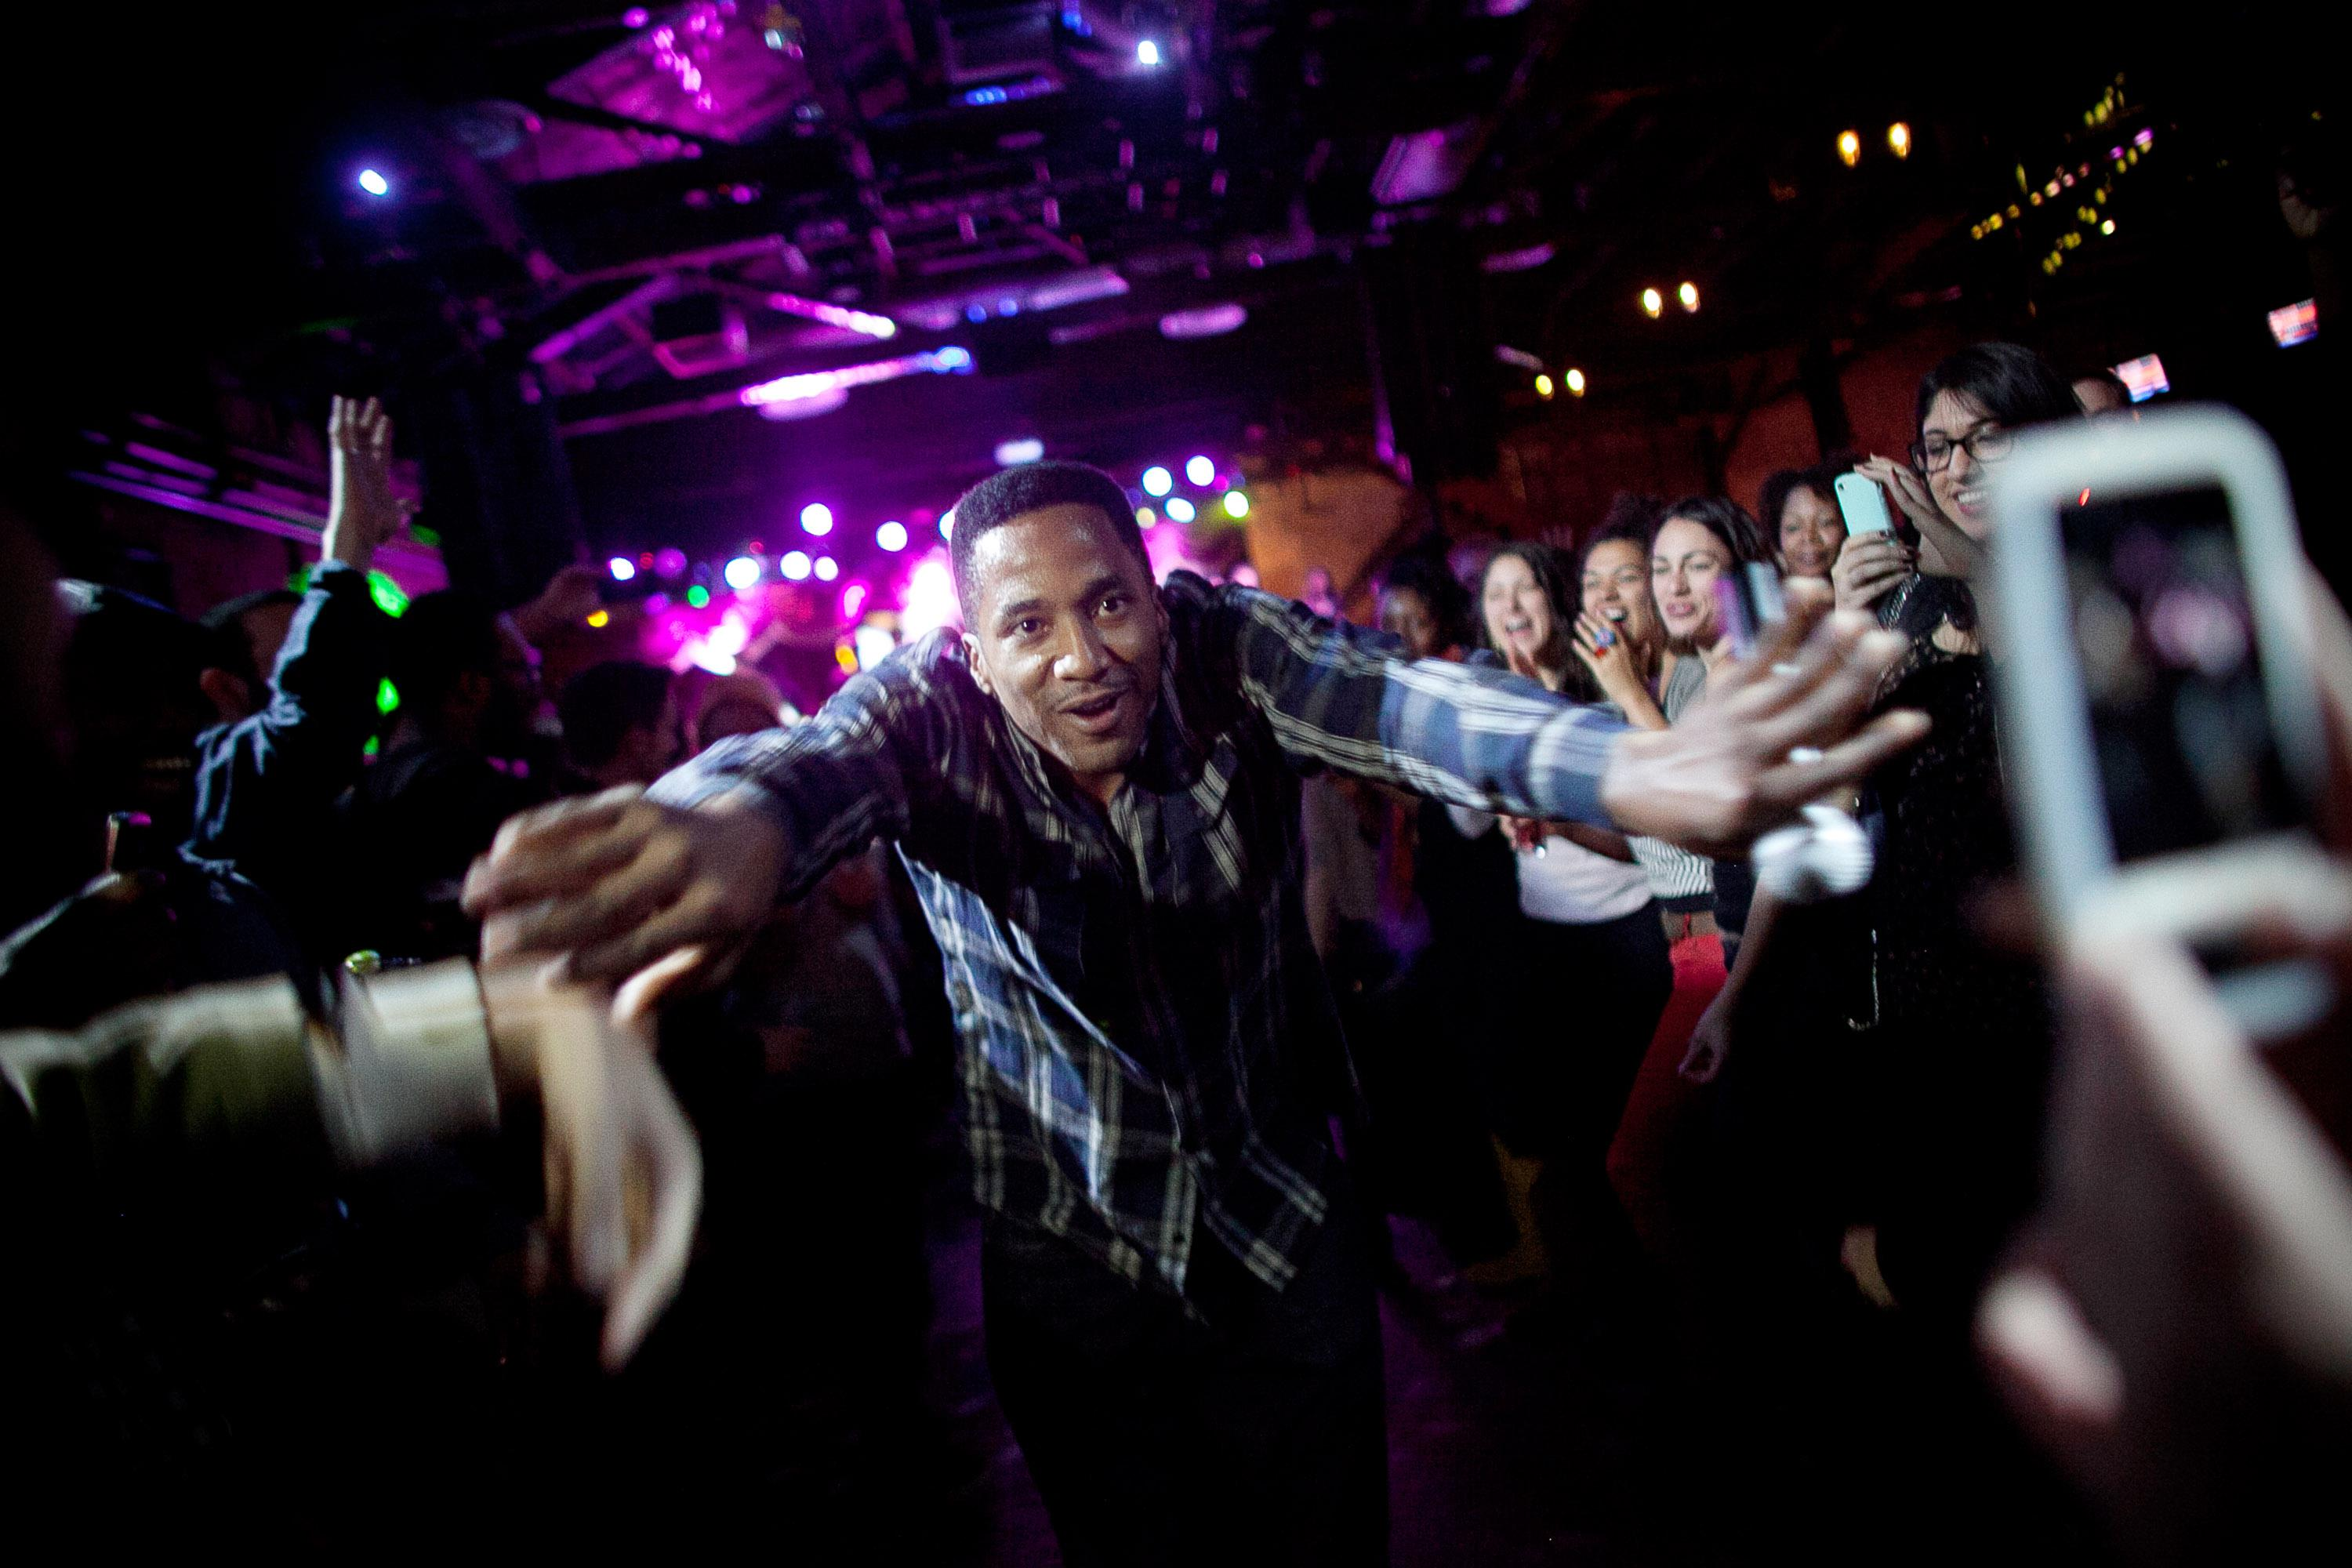 Brooklyn Music Venue And Bowling Alley Hosts Weekly Soul Train Inspired 'Bowl Train'